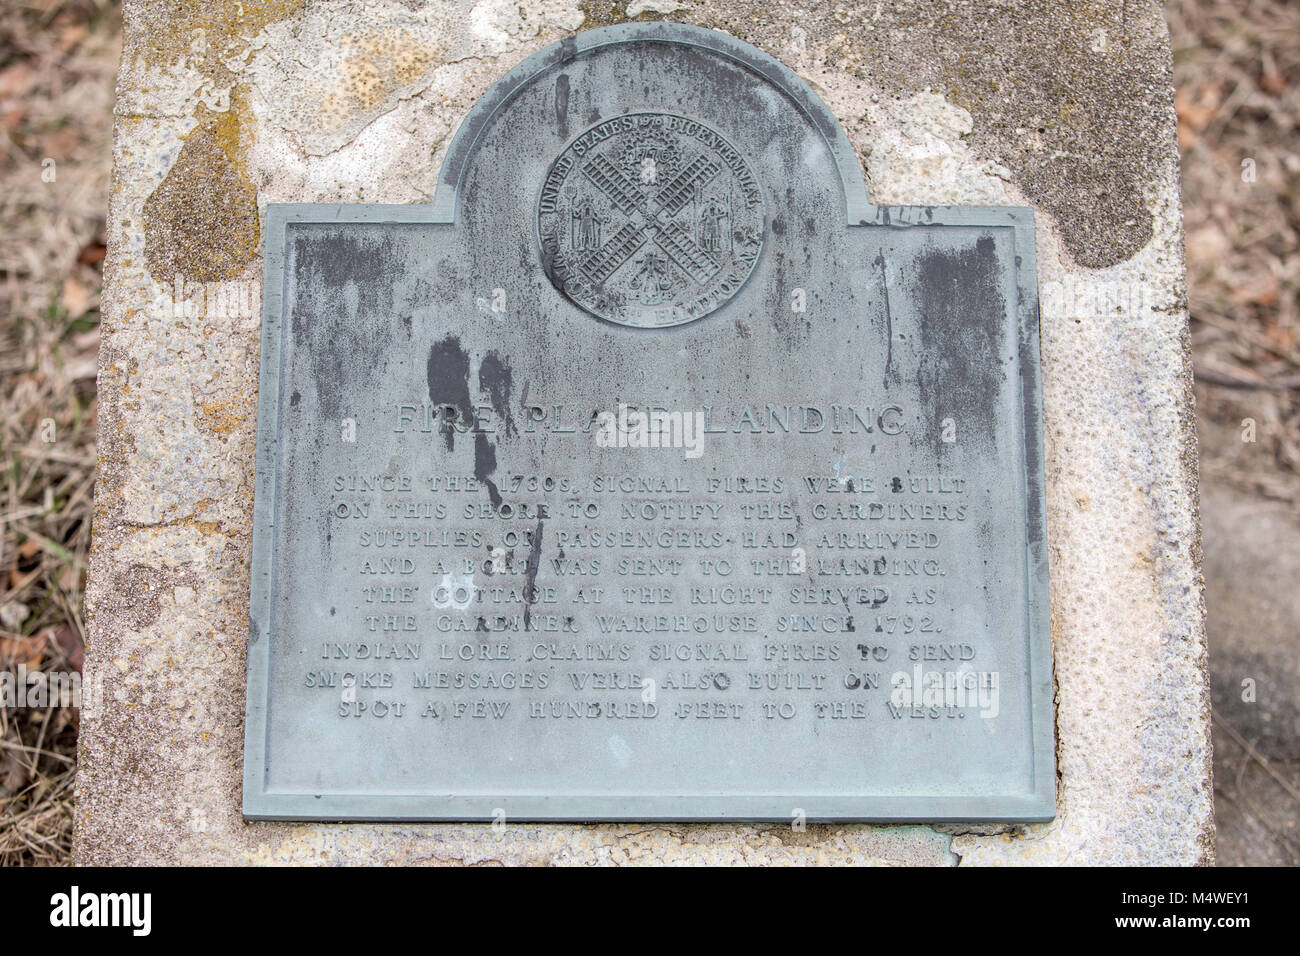 historic place marked by a marker at Fire Place landing in east hampton, ny - Stock Image